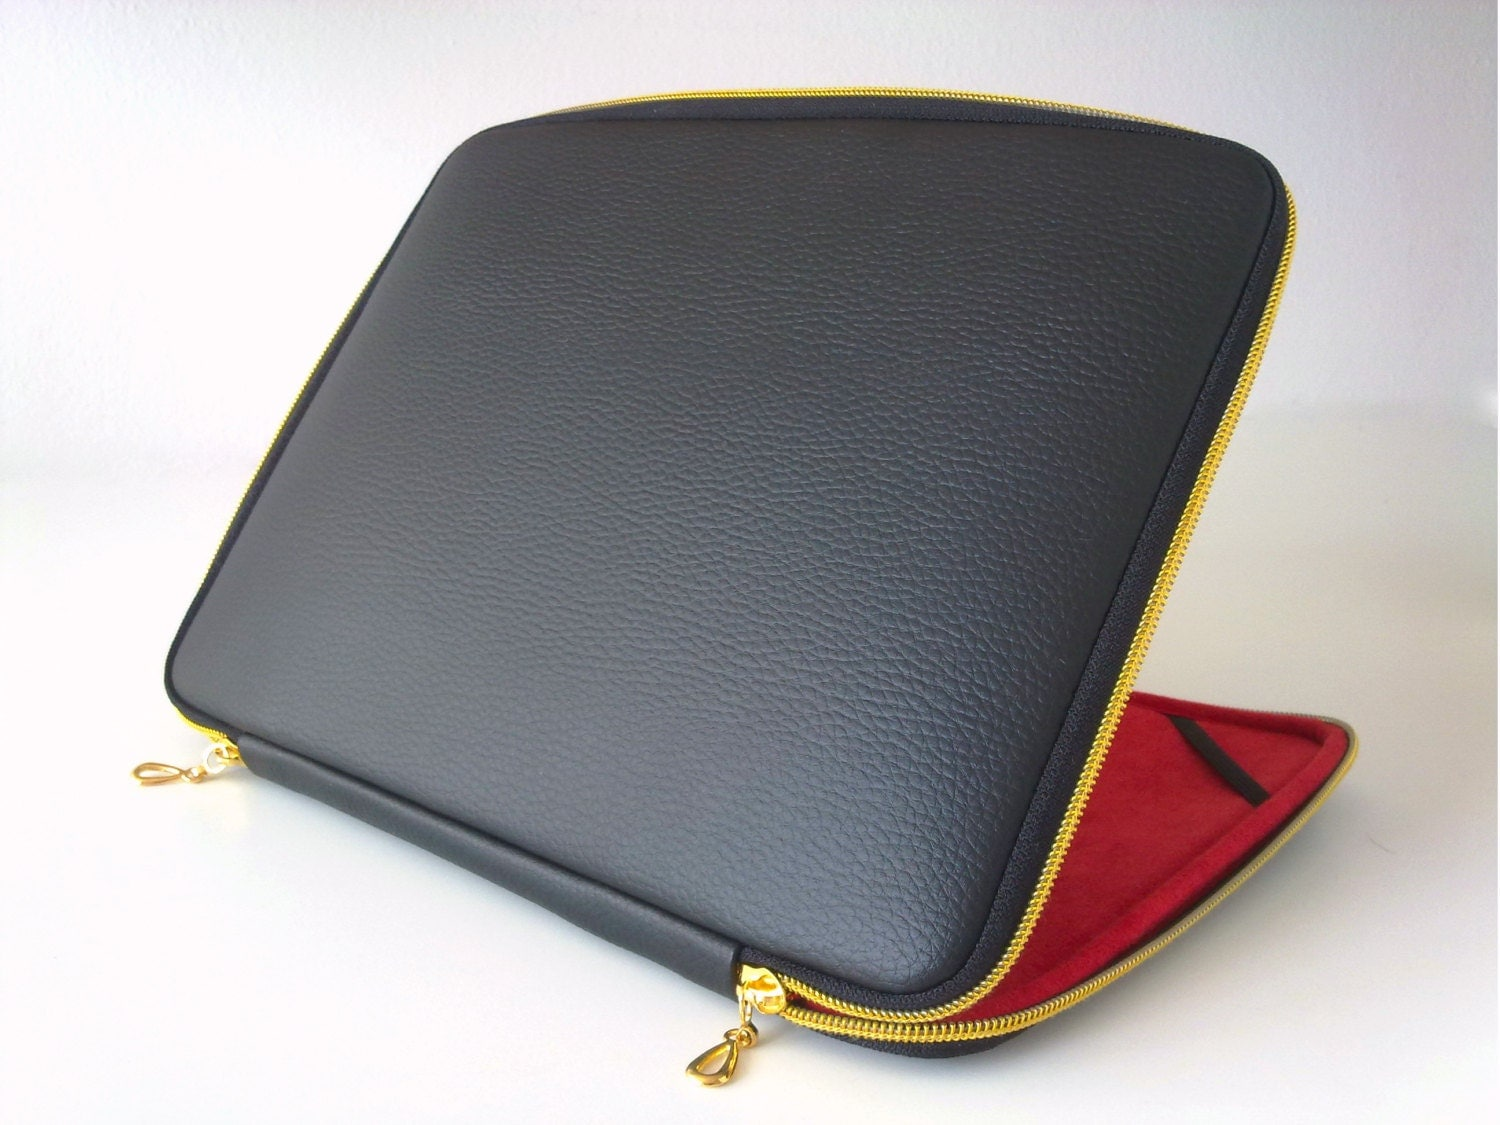 Black leather laptop caseleather caselaptop sleeveleather for Housse 17 pouces